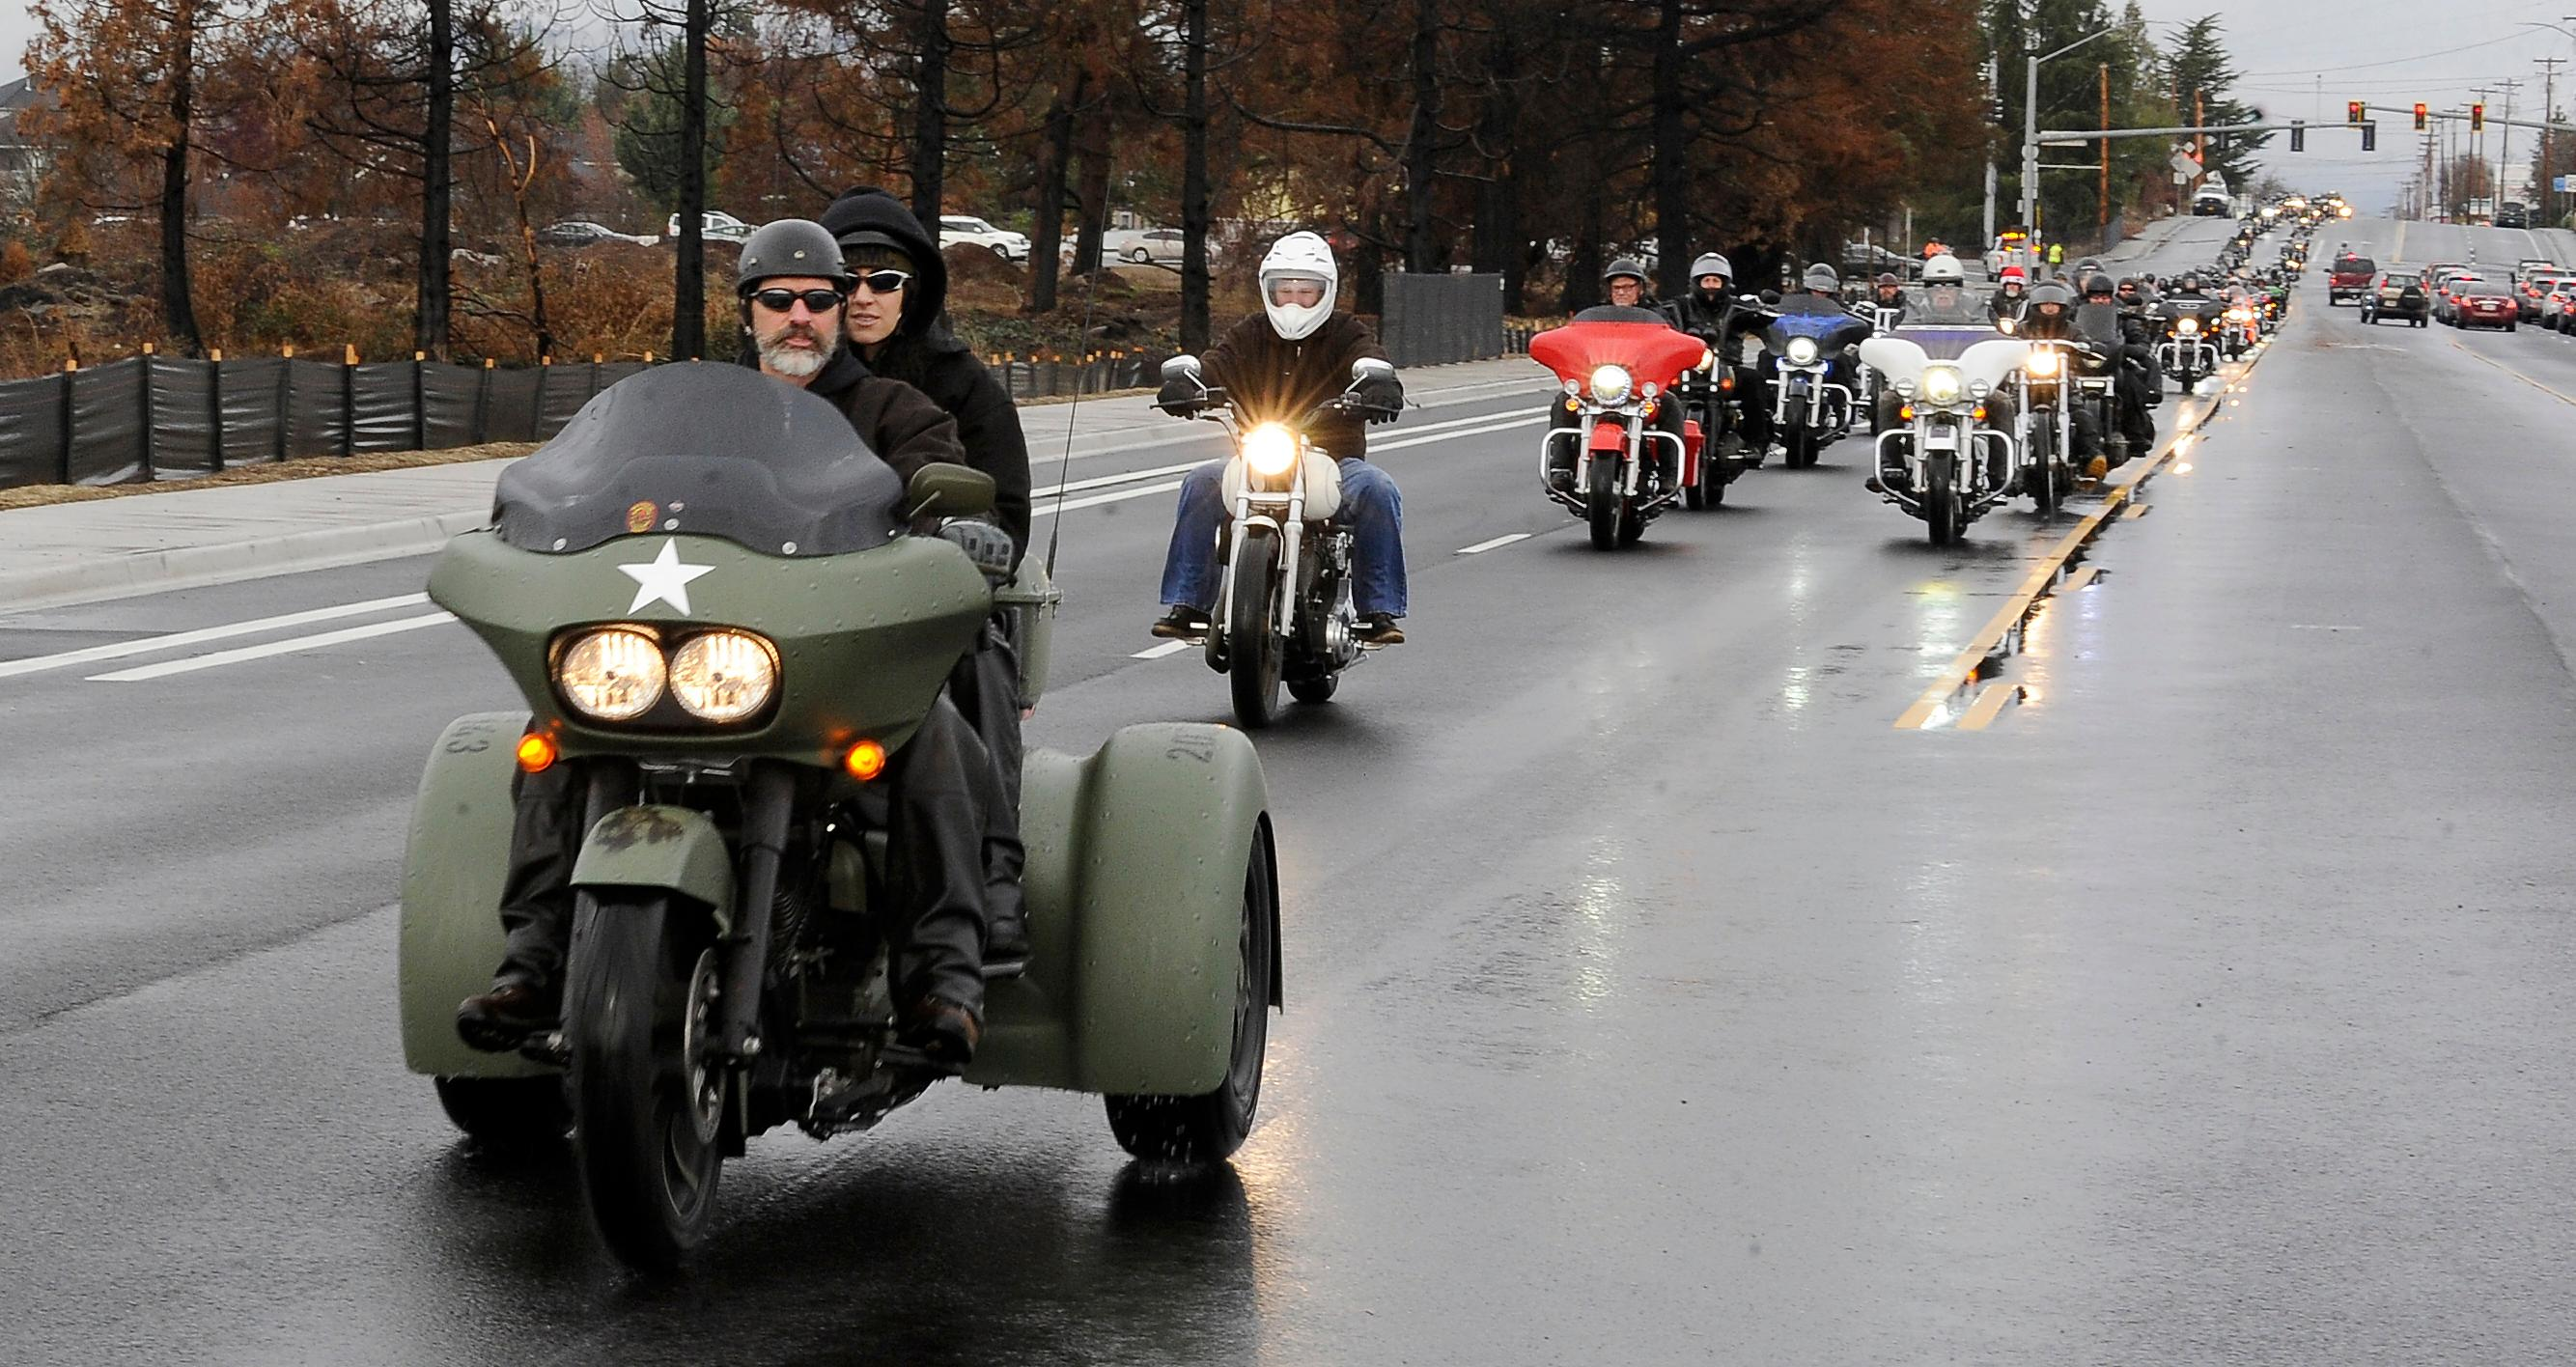 Andy Atkinson / Mail Tribune <br><p>Motorcycles travel down Table Rock Road in Central Point Saturday during the Southern Oregon Toy Run.</p>